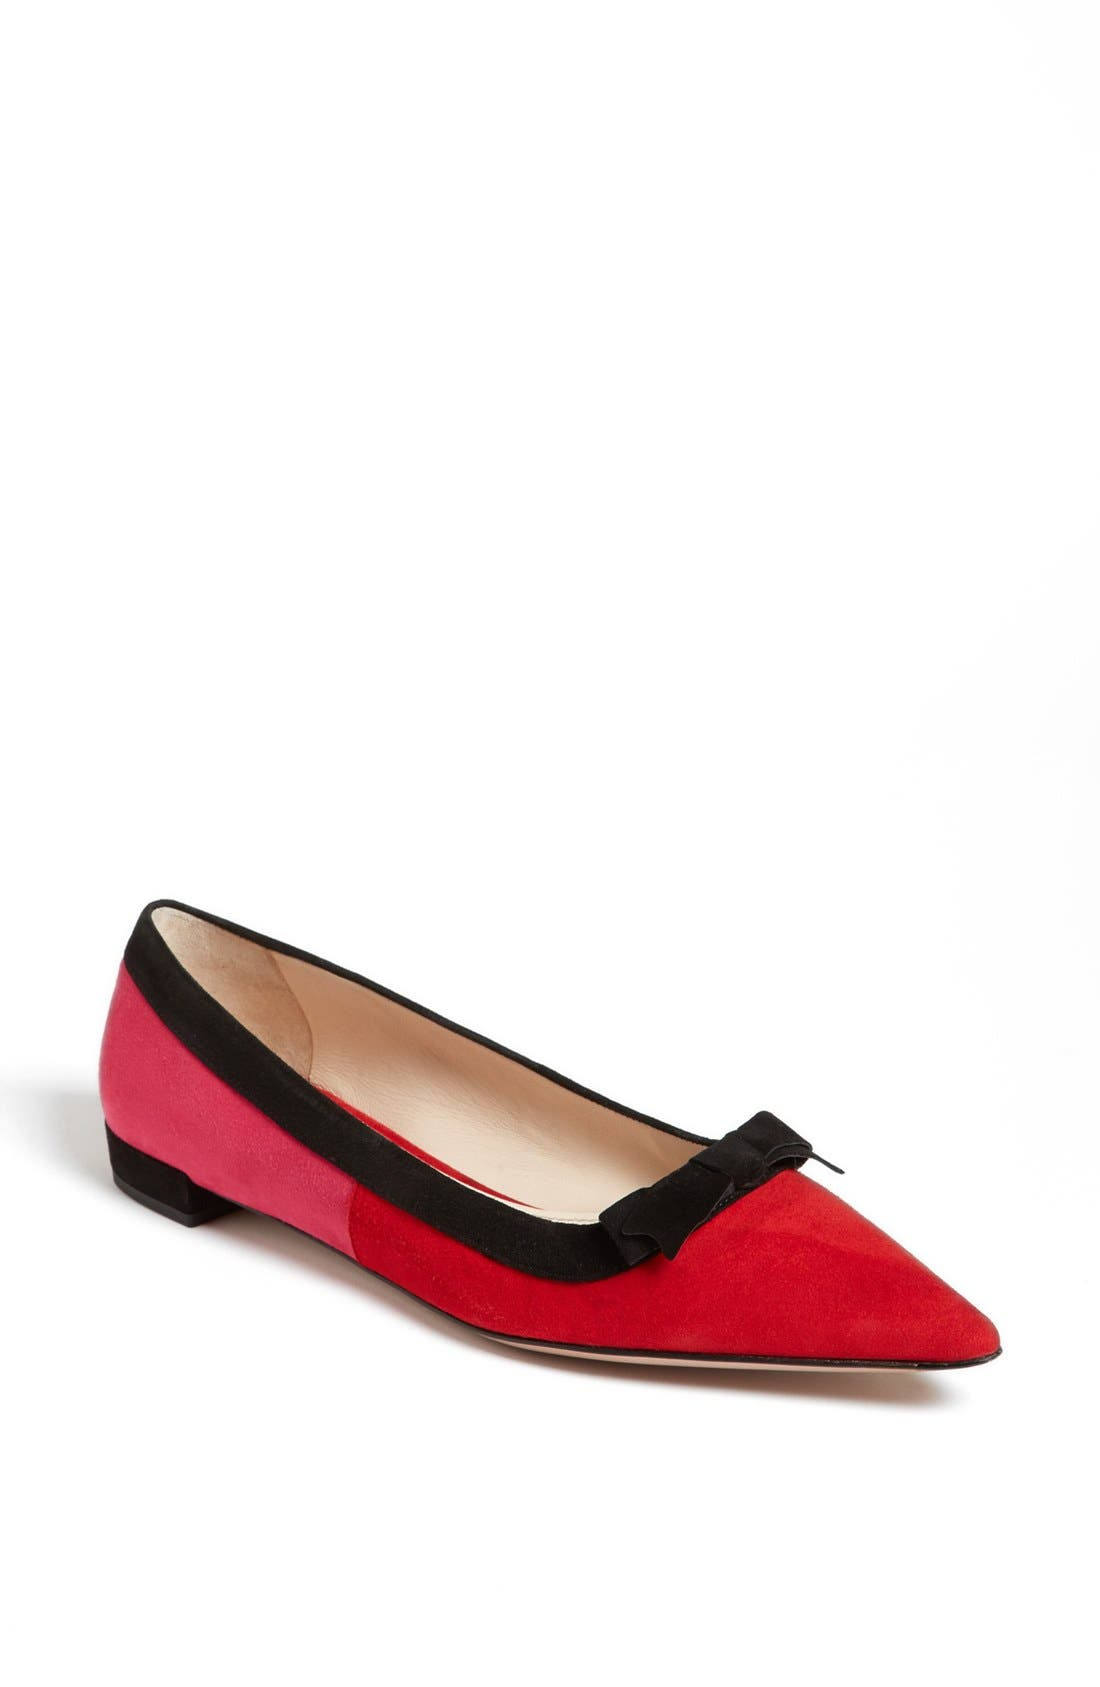 Alternate Image 1 Selected - Prada Tricolor Bow Pointy Toe Flat